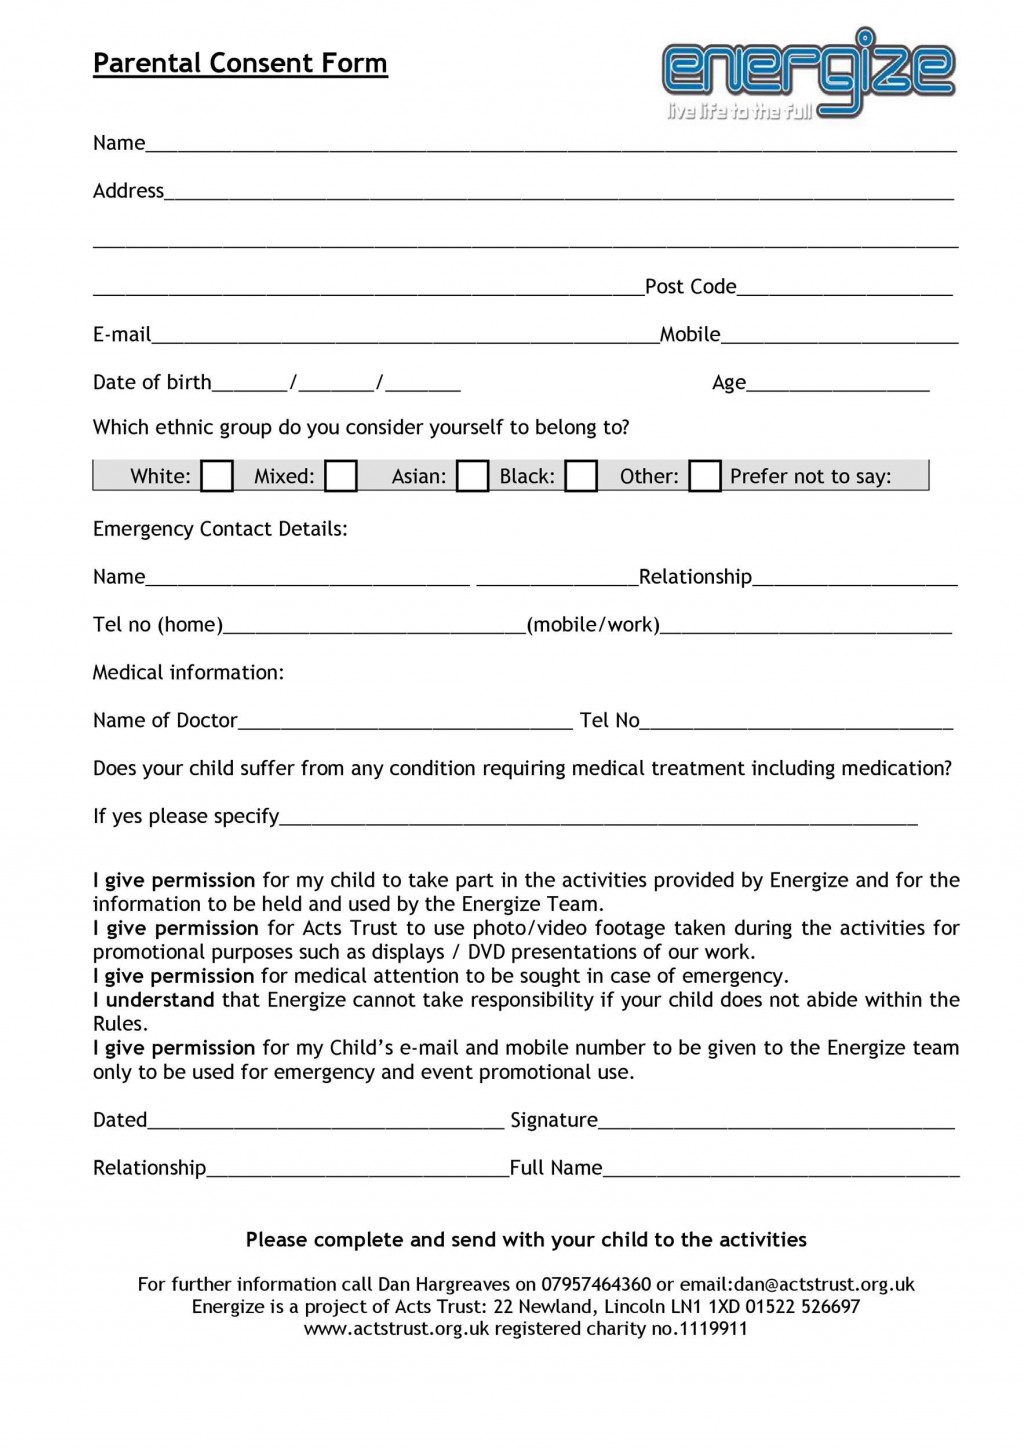 007 Archaicawful Free Printable Medical Consent Form Template Image Large